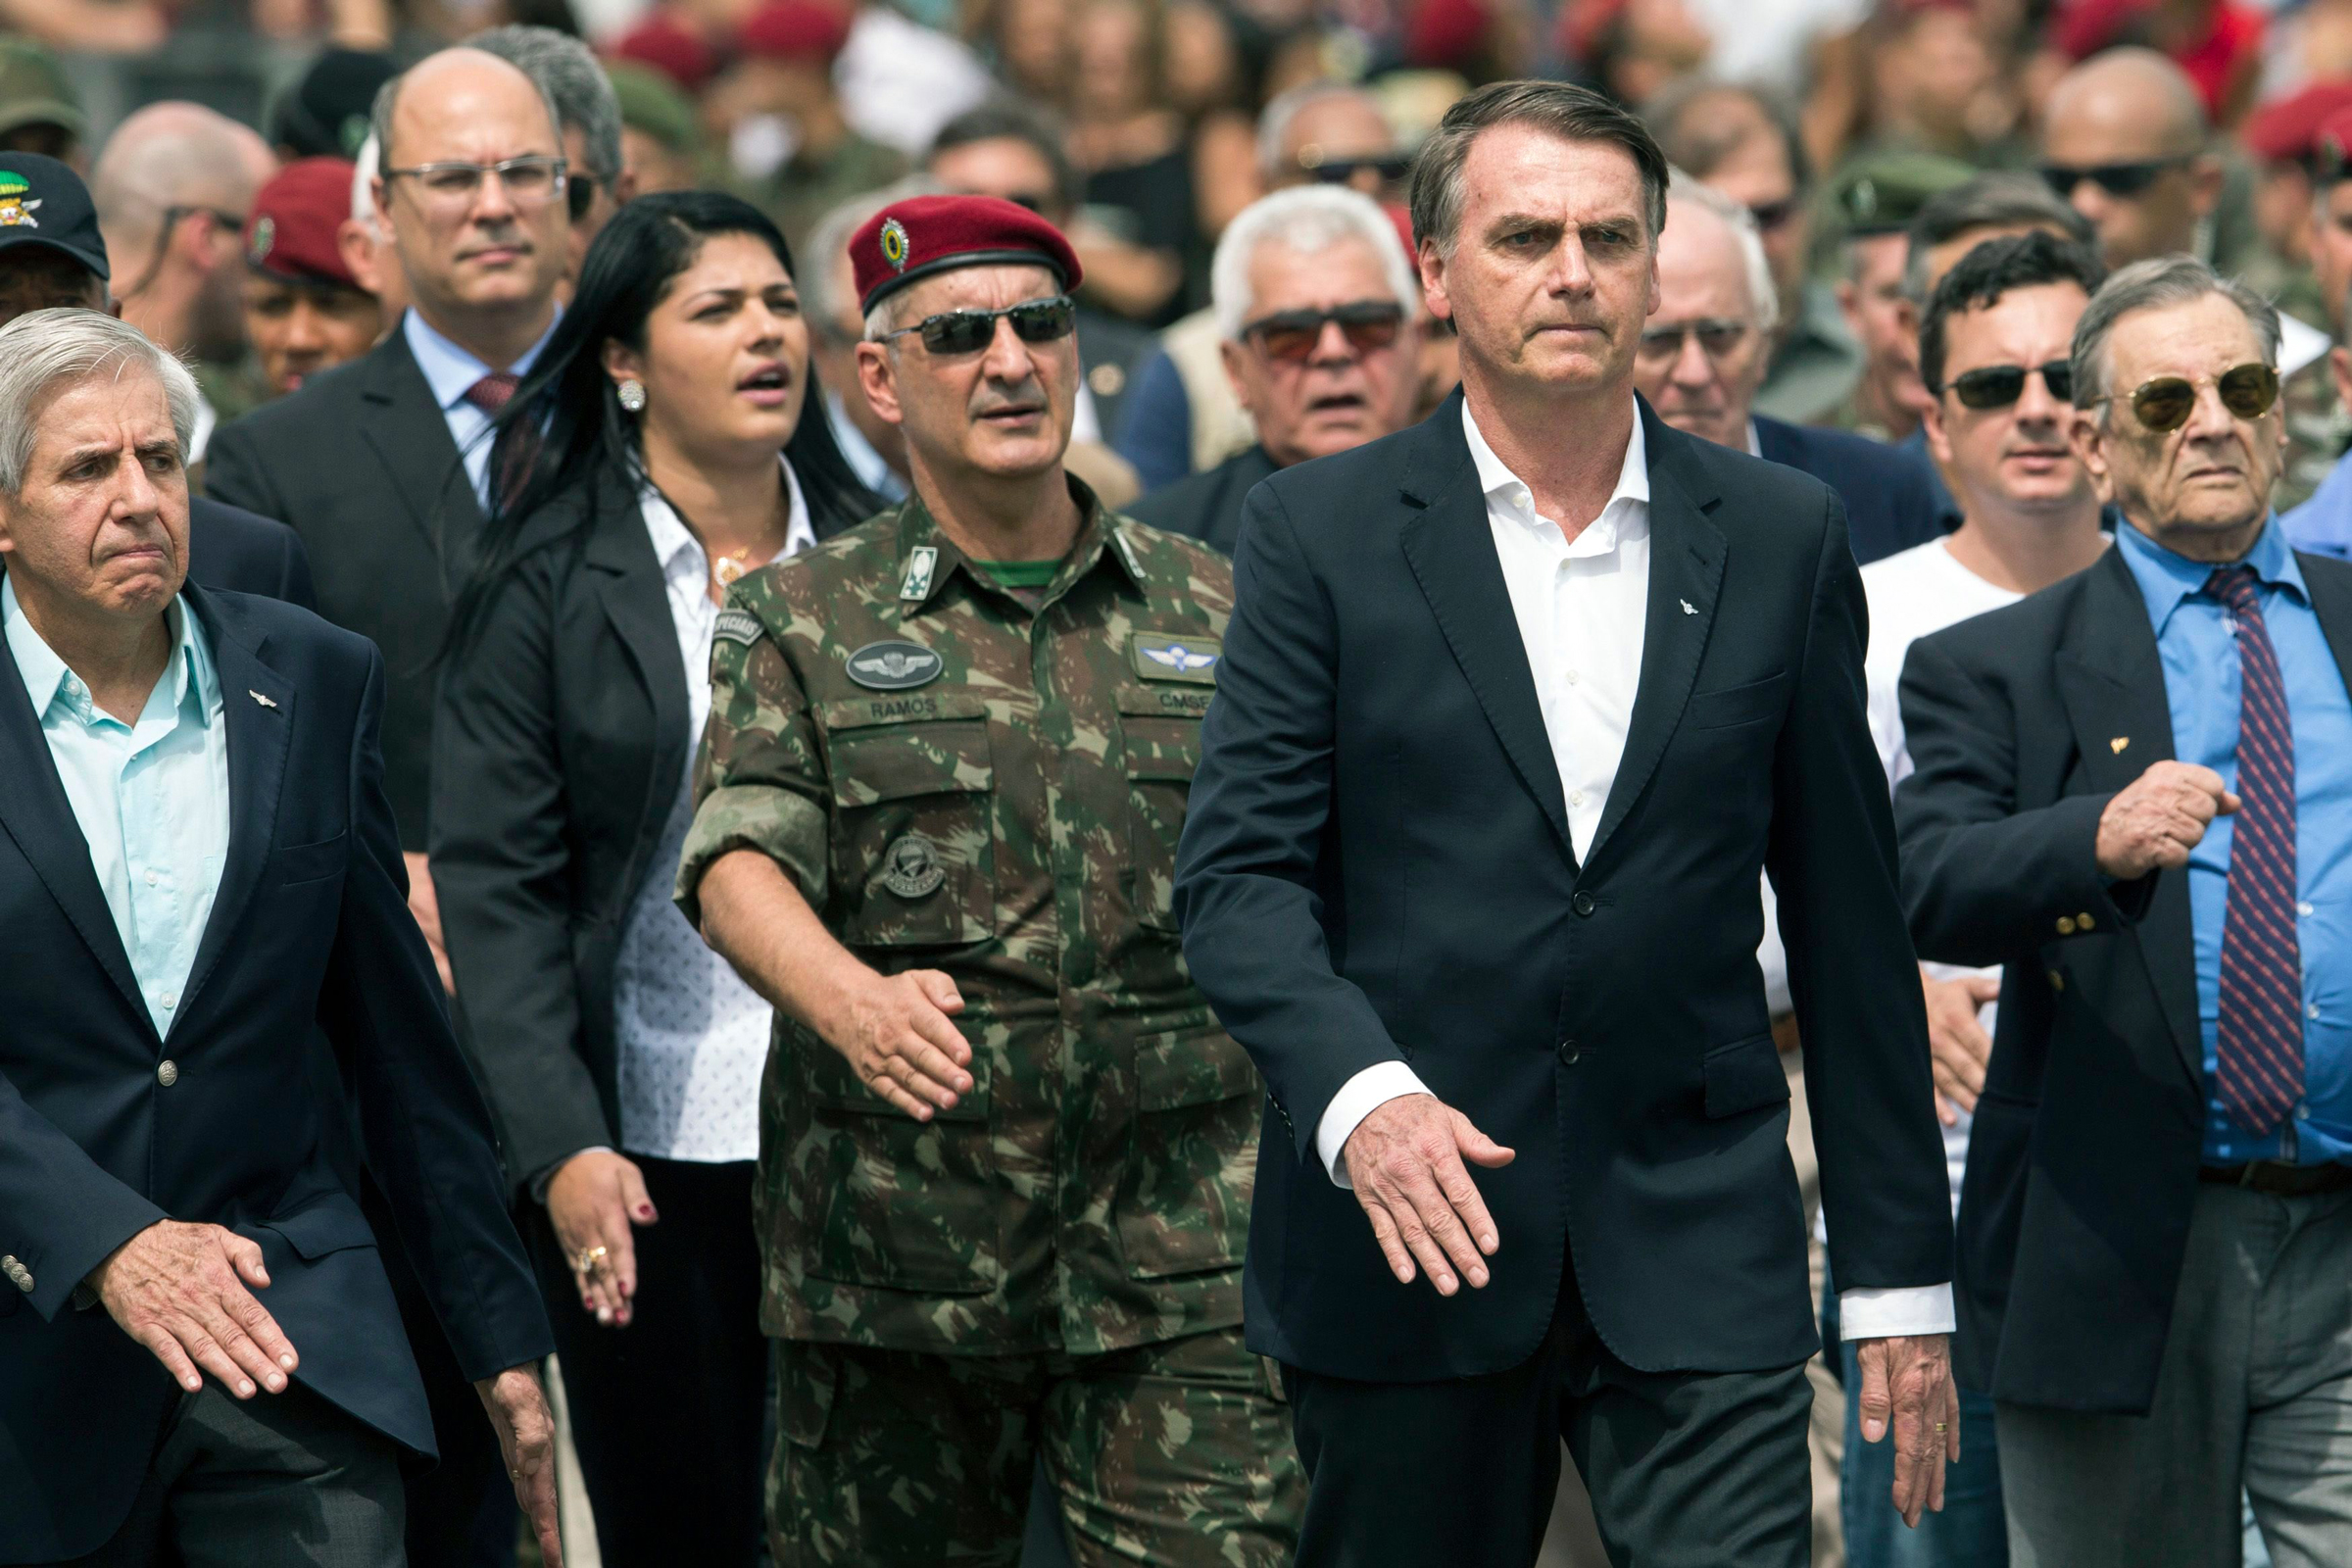 Brazil's President-elect Jair Bolsonaro, second from right, marches during a ceremony marking the 73rd anniversary of the Brazilian Paratrooper Infantry Brigade in Rio de Janeiro, Brazil, . Bolsonaro will be sworn in as Brazil's next president on Jan. 1Bolsonaro, Rio de Janeiro, Brazil - 24 Nov 2018